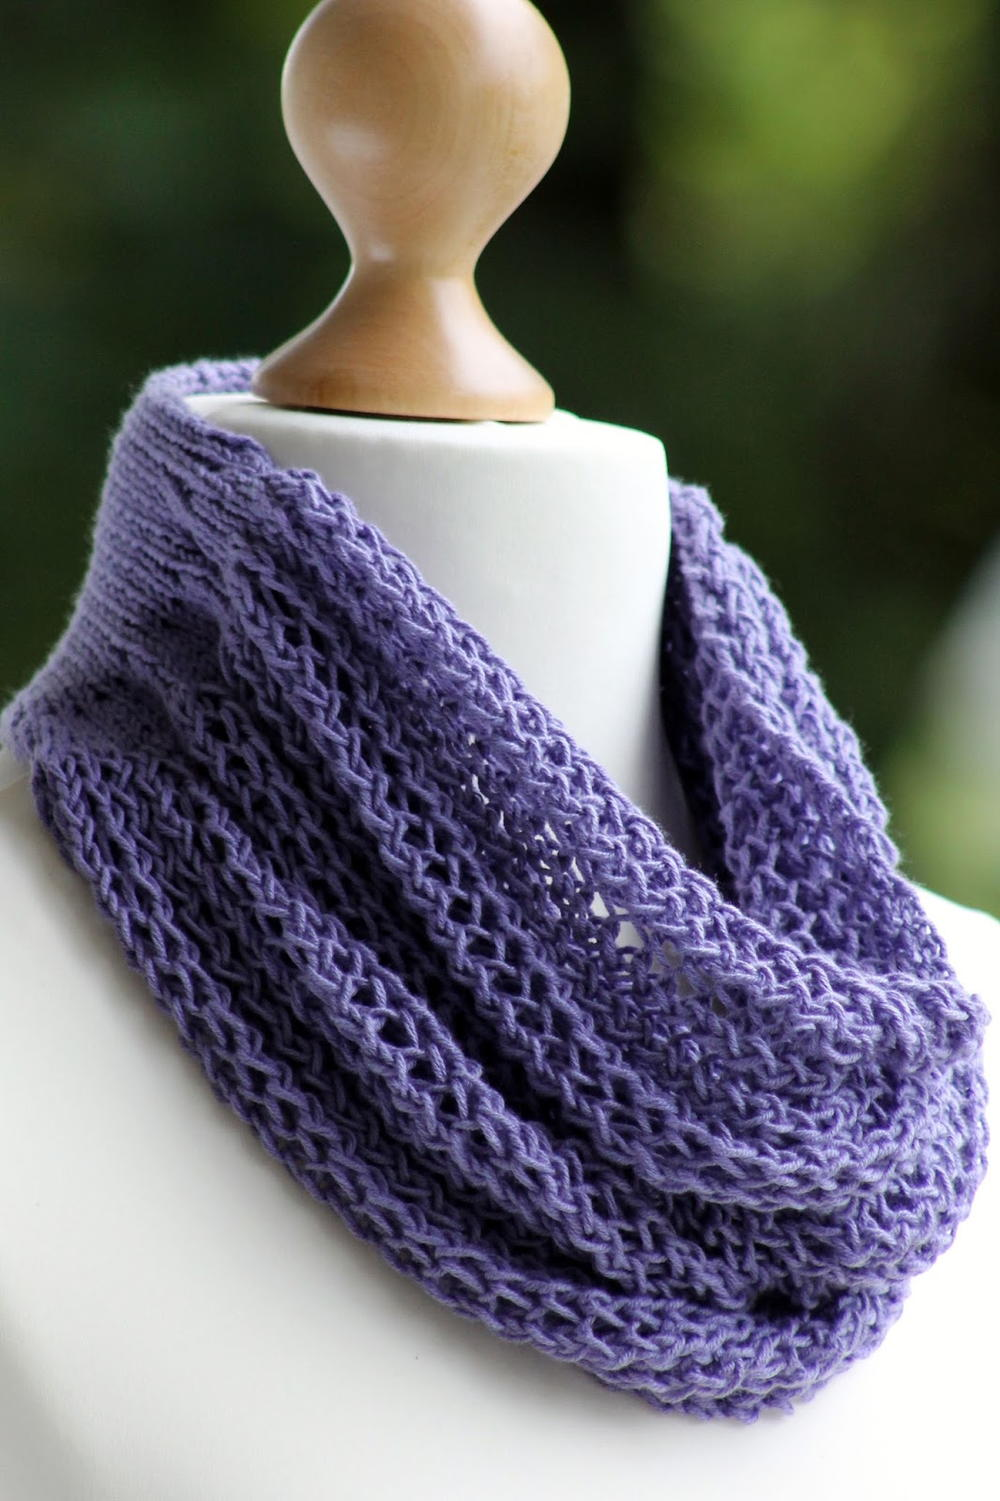 Free Knitting Patterns For Women s Cowls : Gorgeous Grape Knit Cowl AllFreeKnitting.com